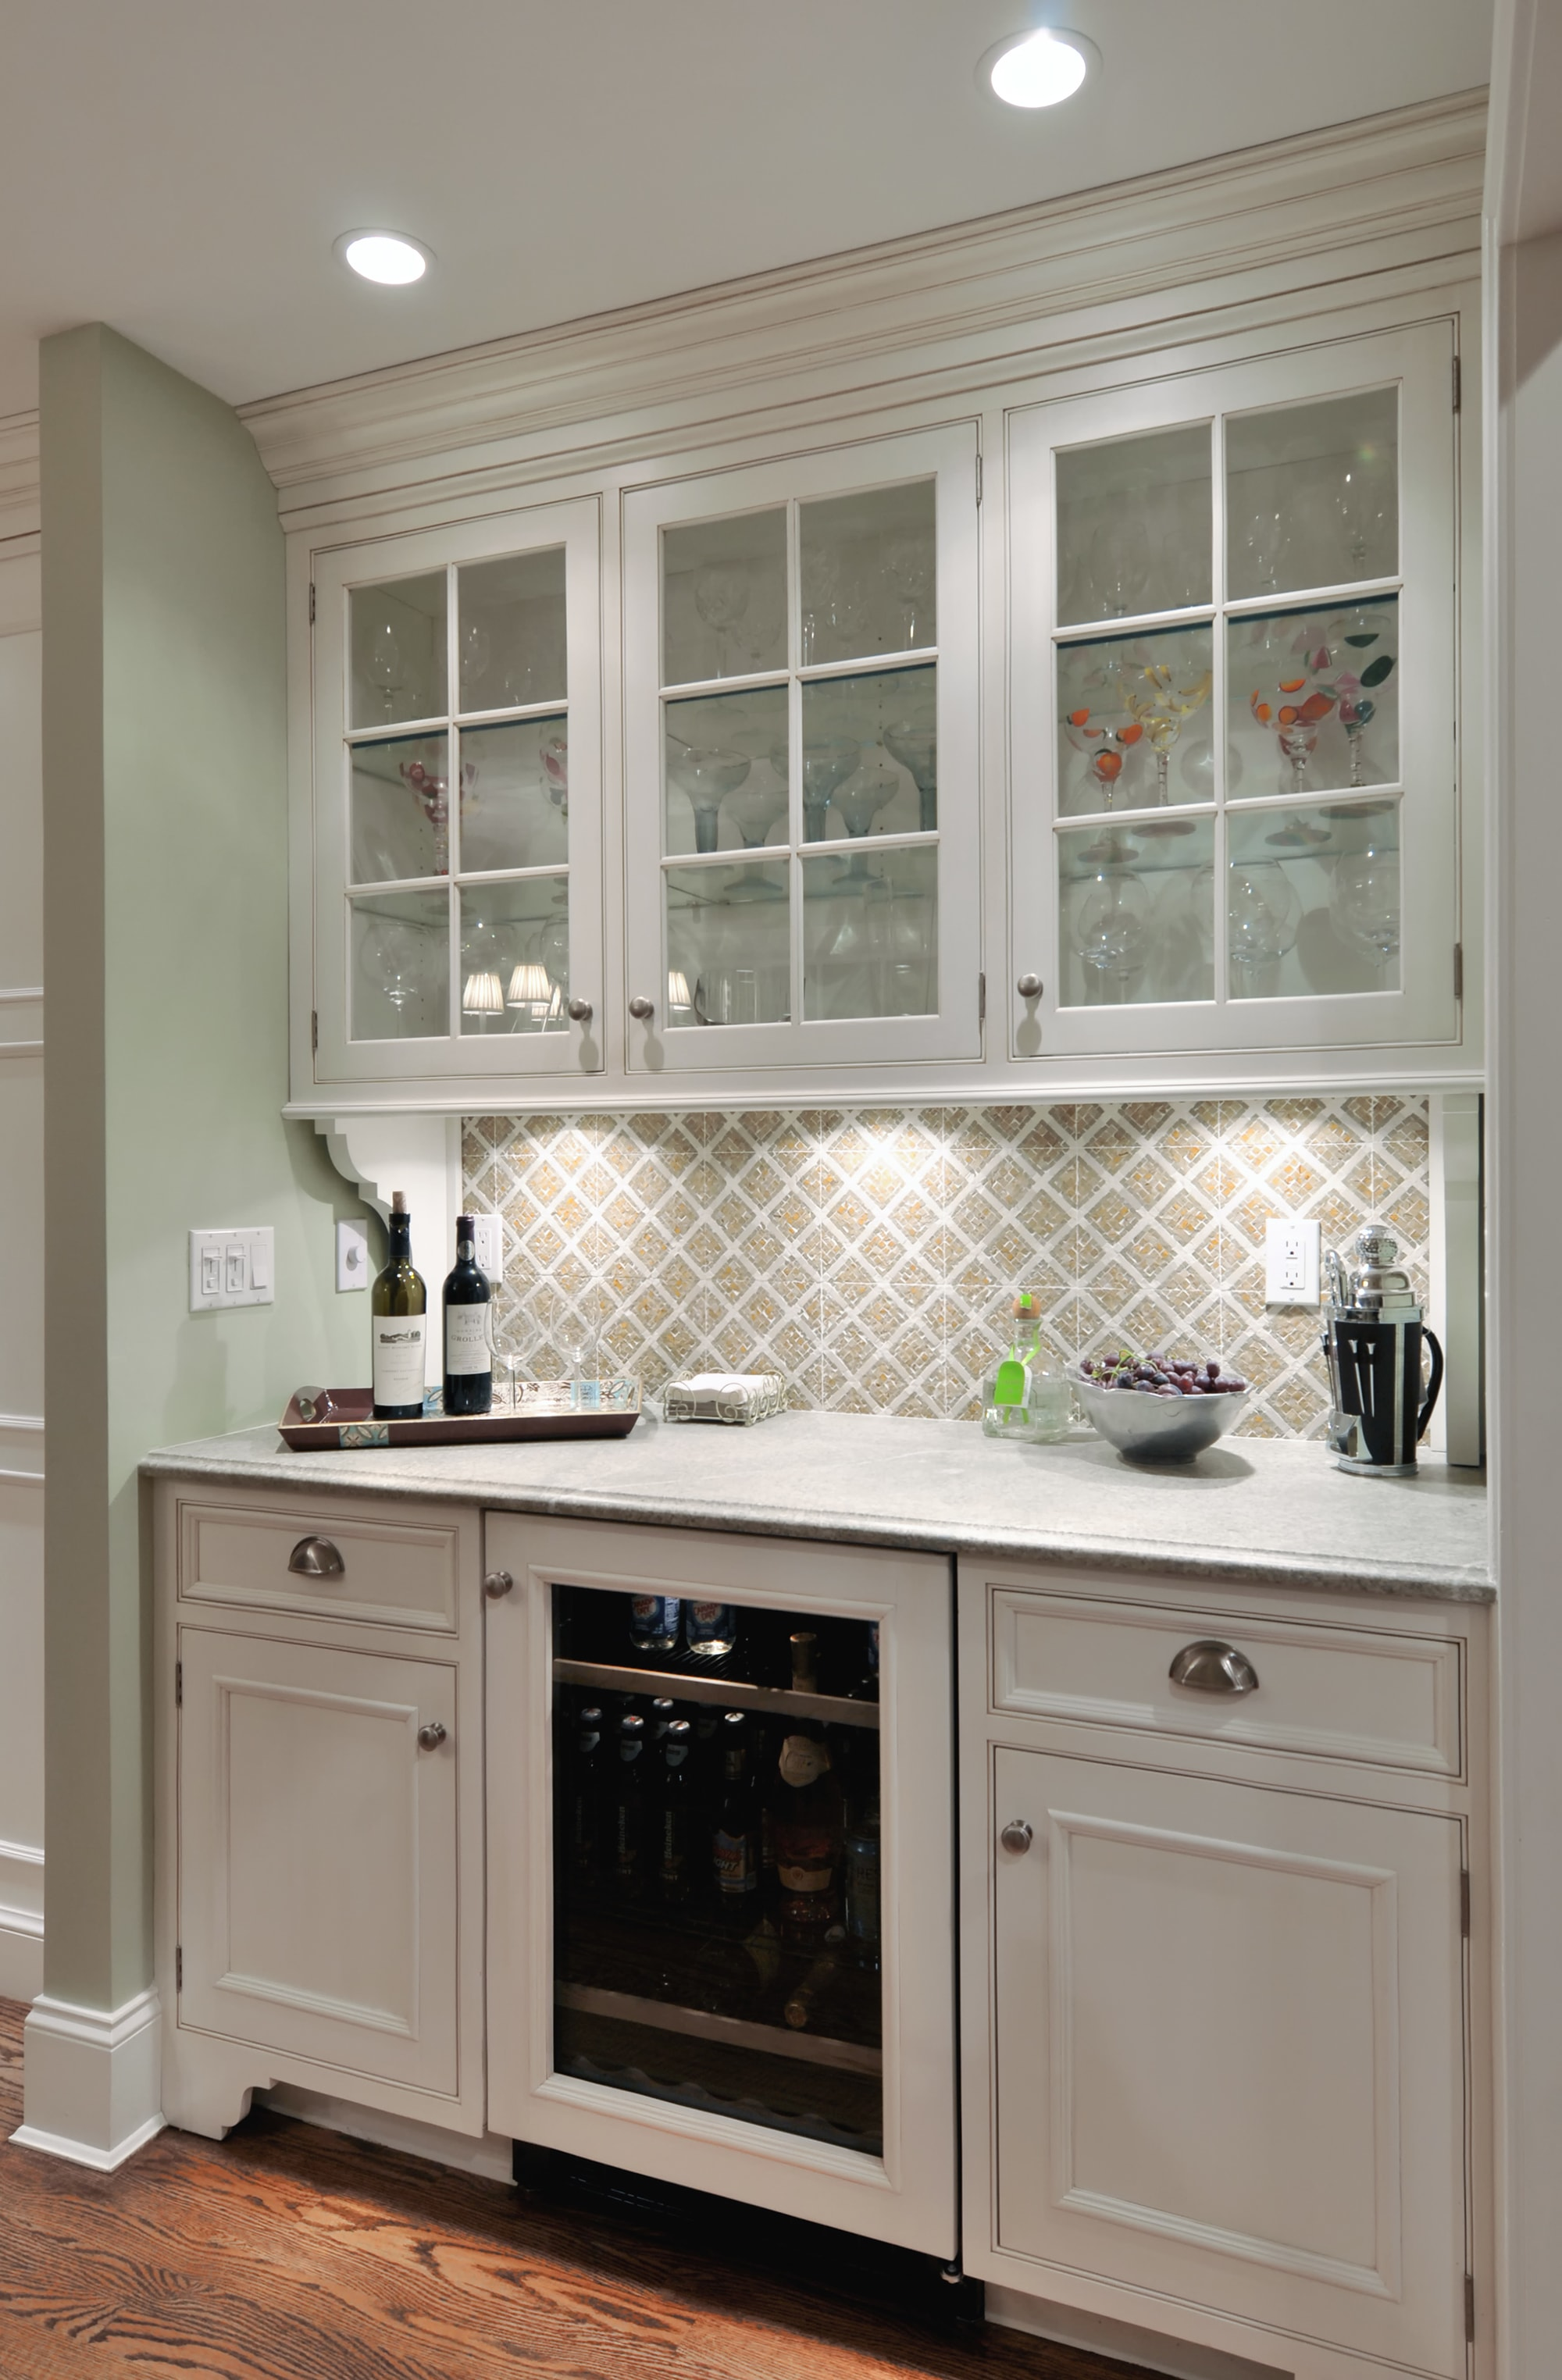 Traditional style kitchen with glass cabinets and small wine storage